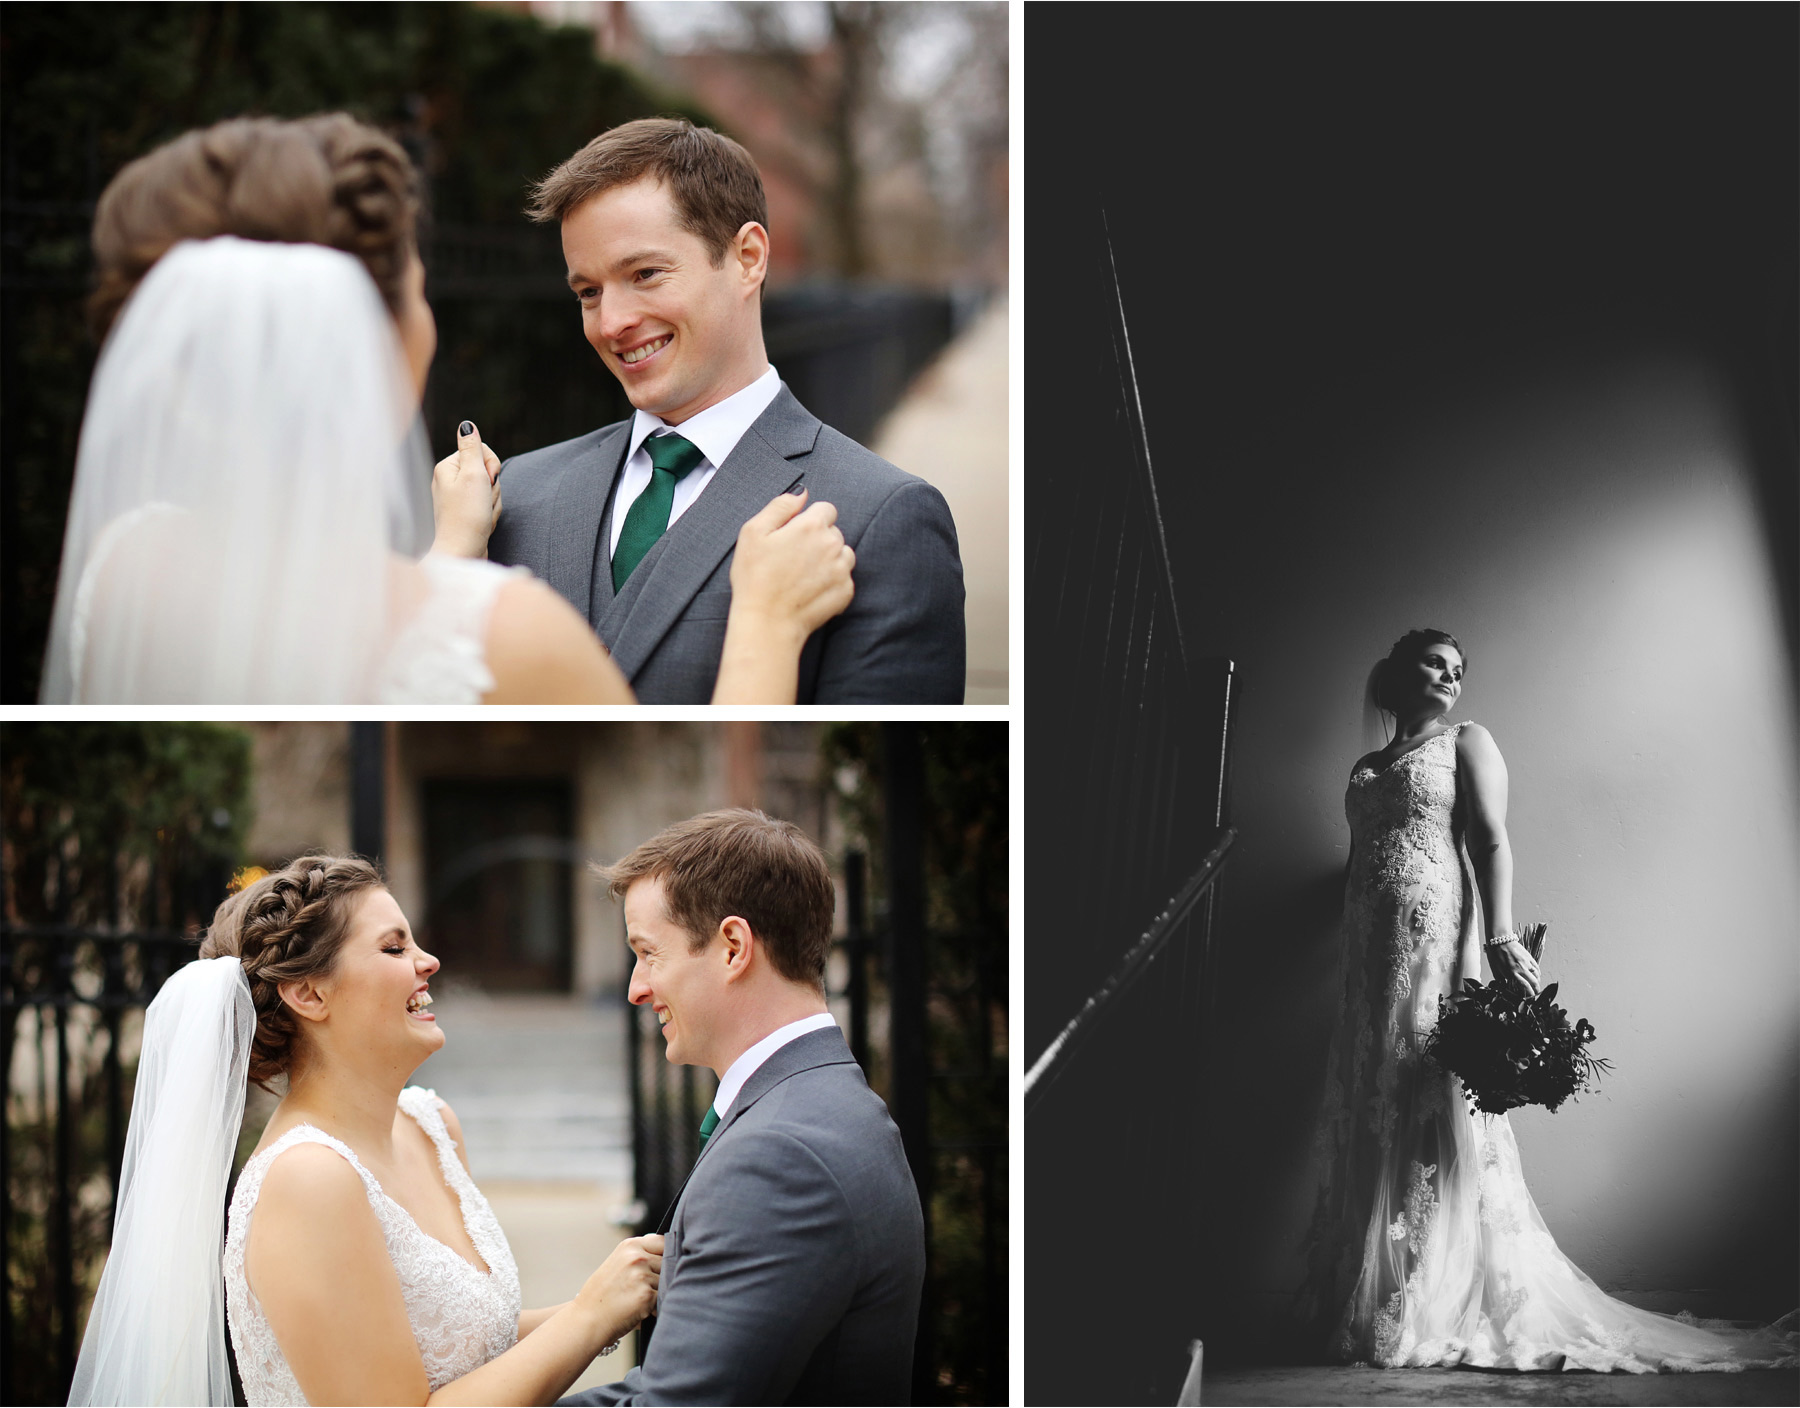 09-Chicago-Illinois-Wedding-Photographer-by-Andrew-Vick-Photography-Winter-Stan-Mansion-First-Meeting-Look-Bride-Groom-Black-and-White-Colleen-and-Mike.jpg